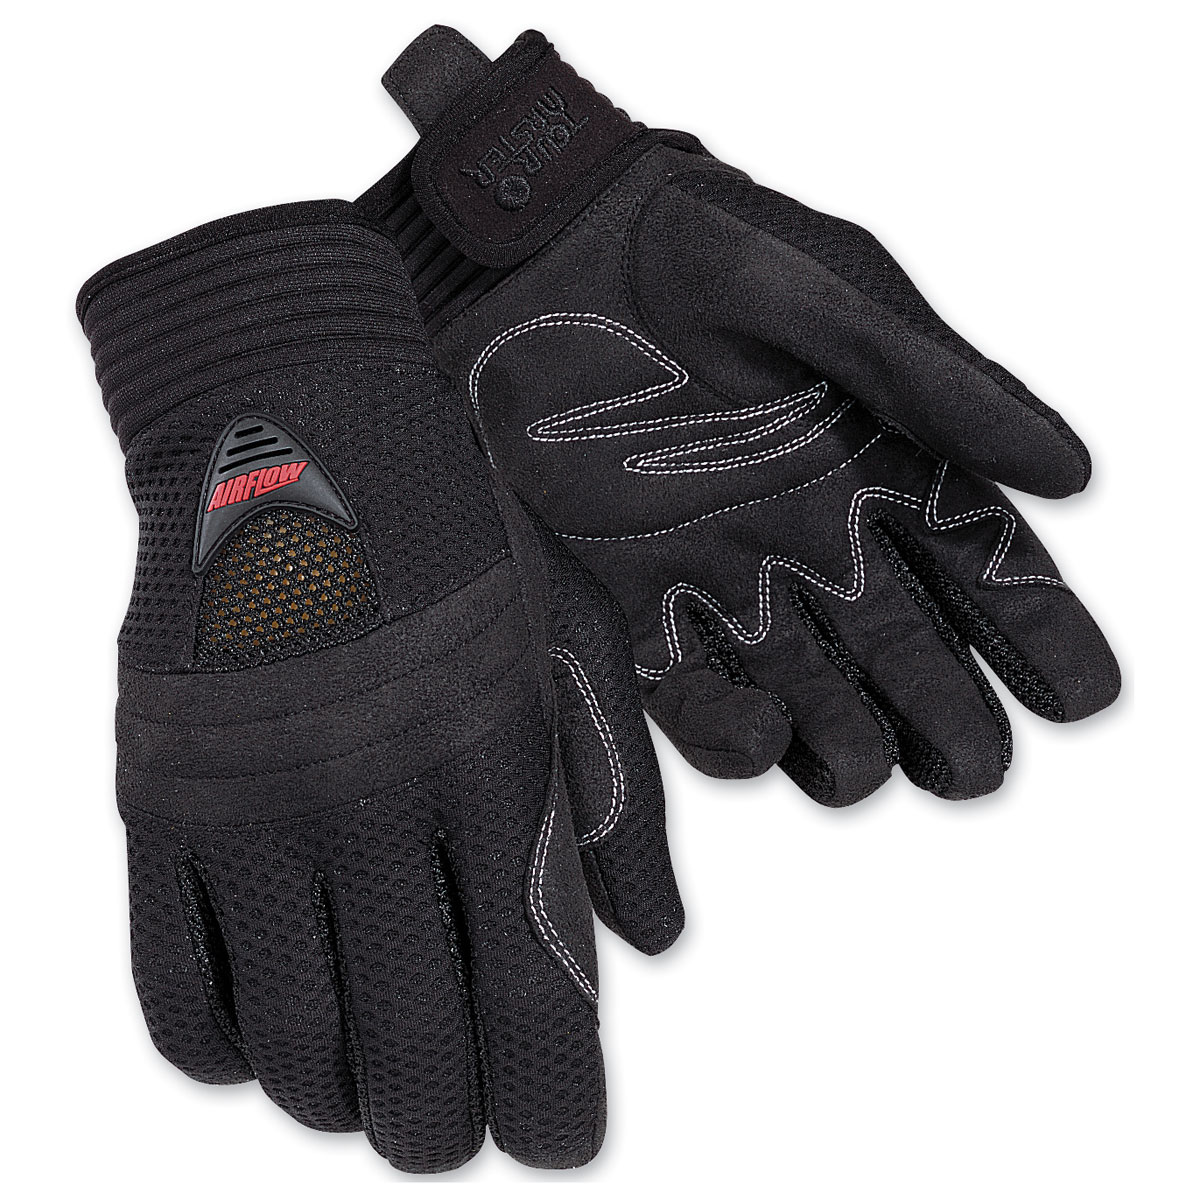 Tour Master Women's Airflow Black Gloves